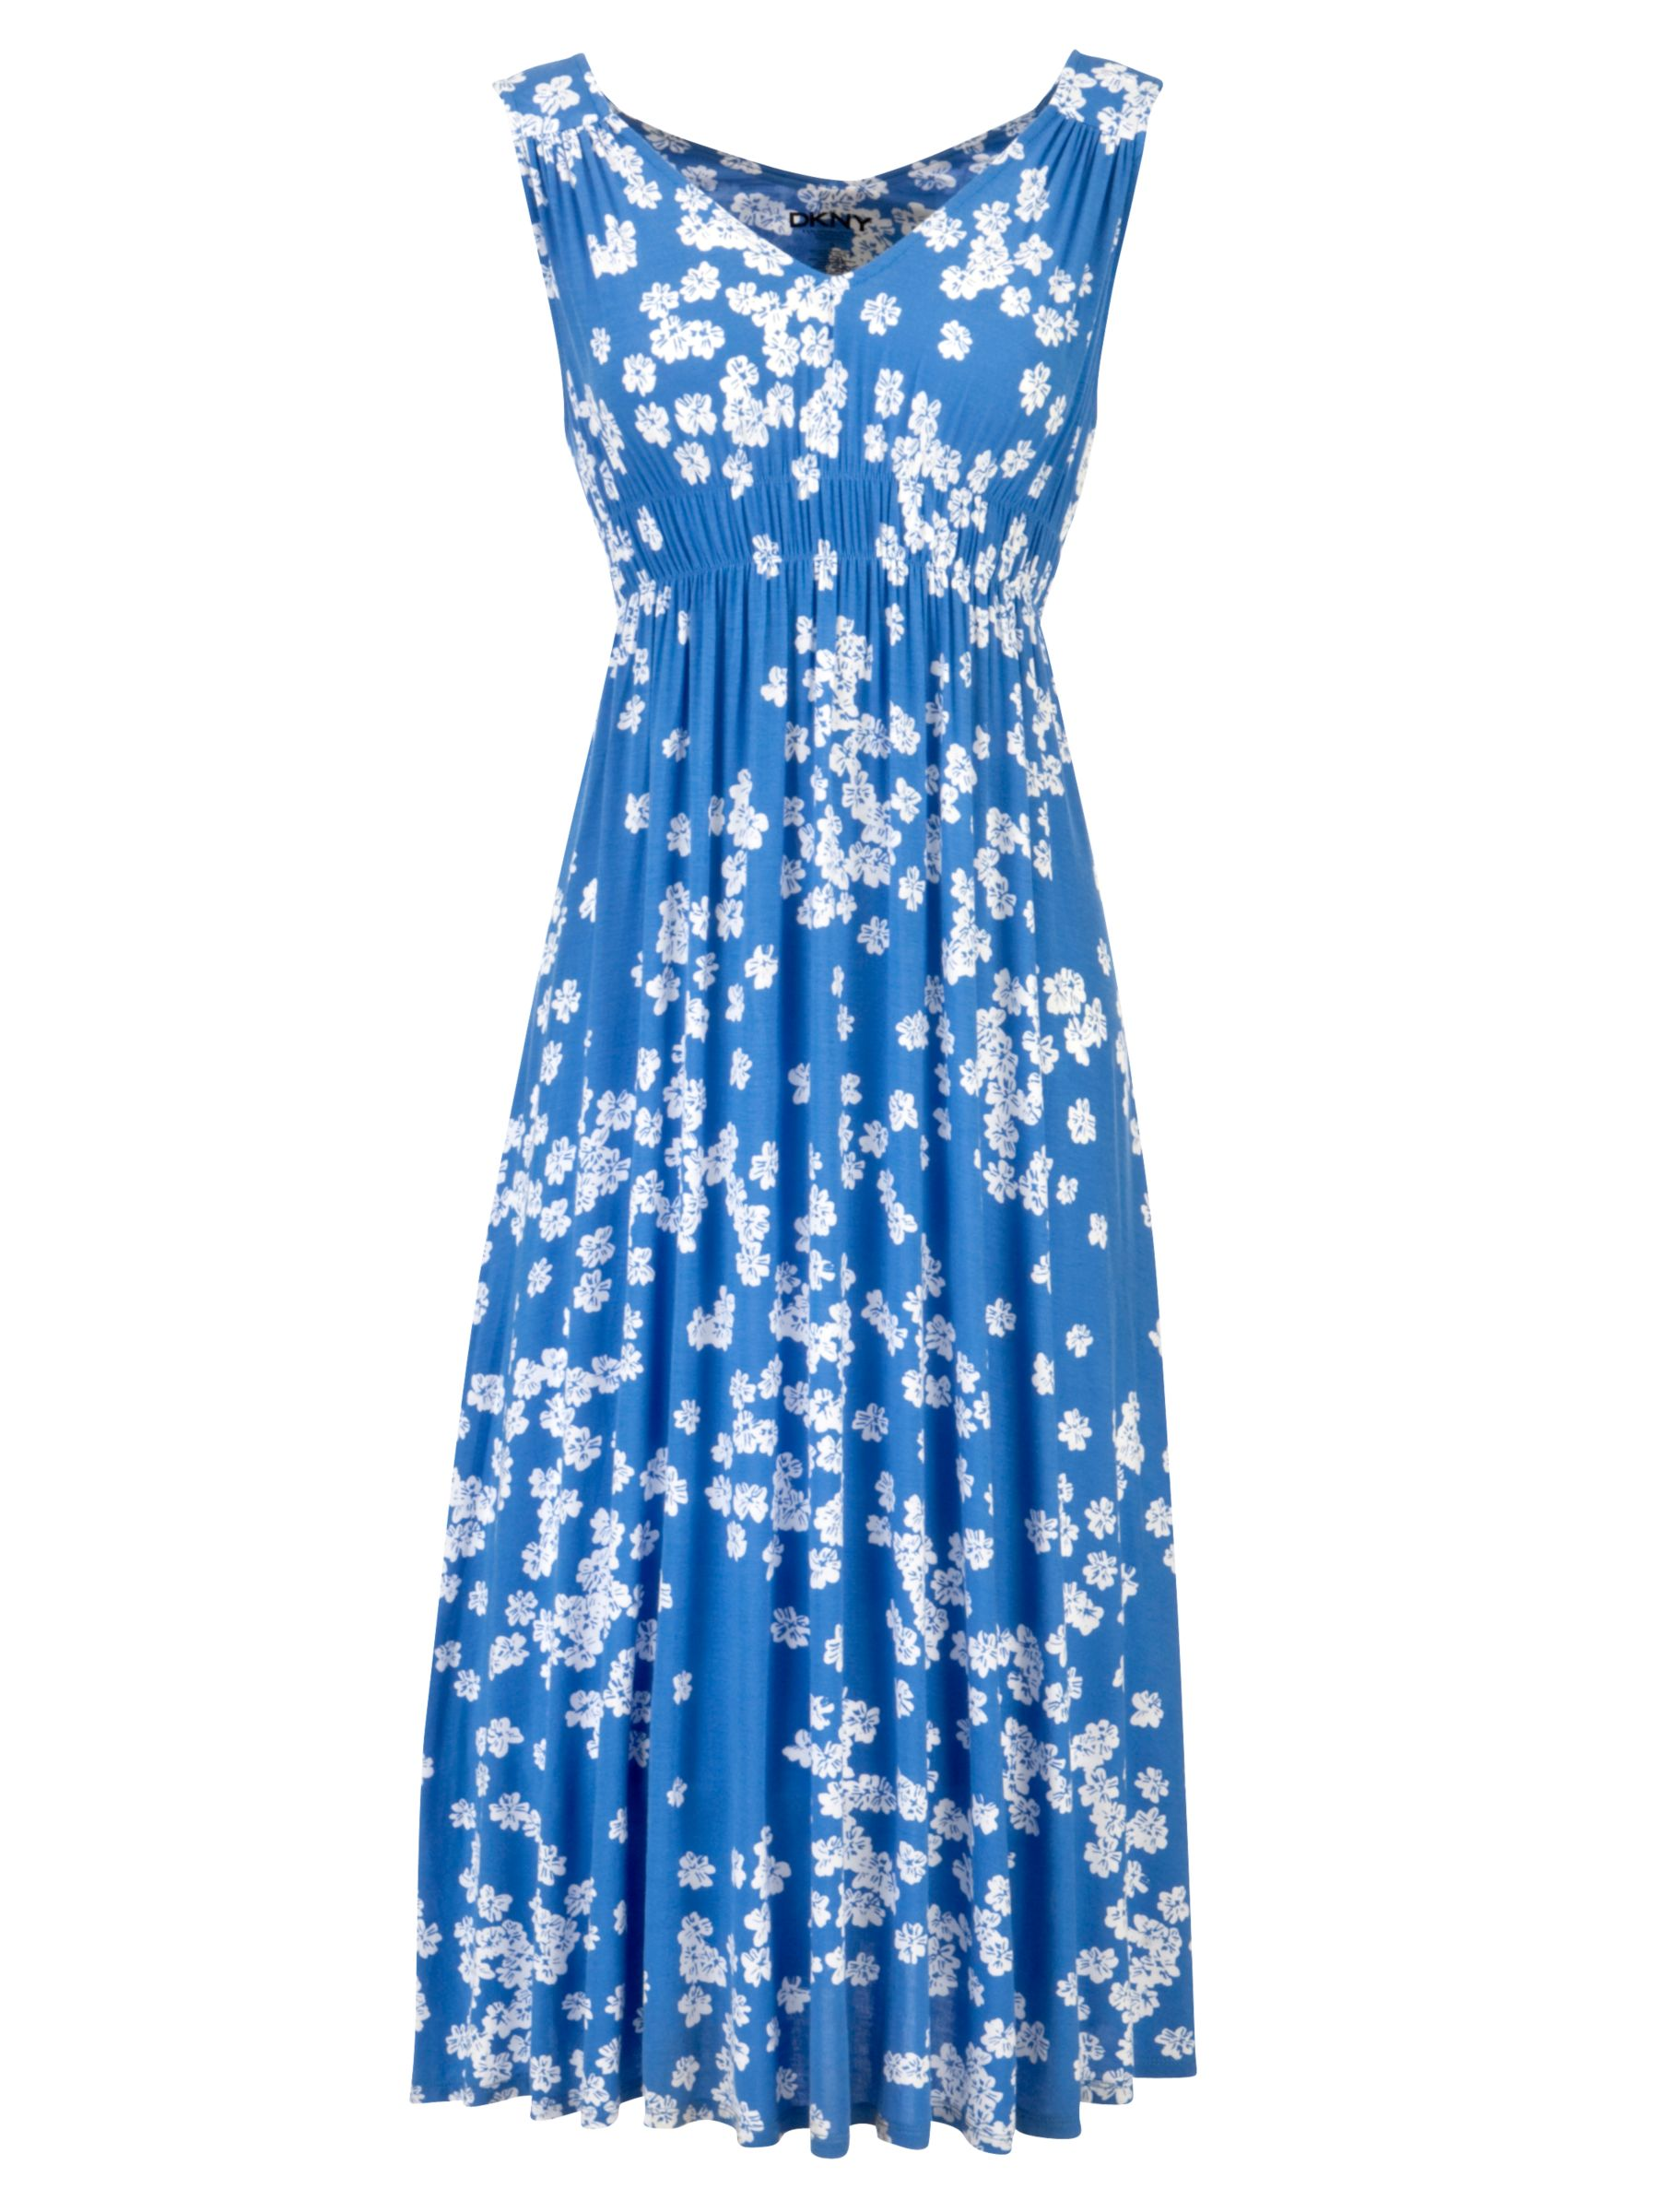 DKNY May Flower Chemise, Baltic